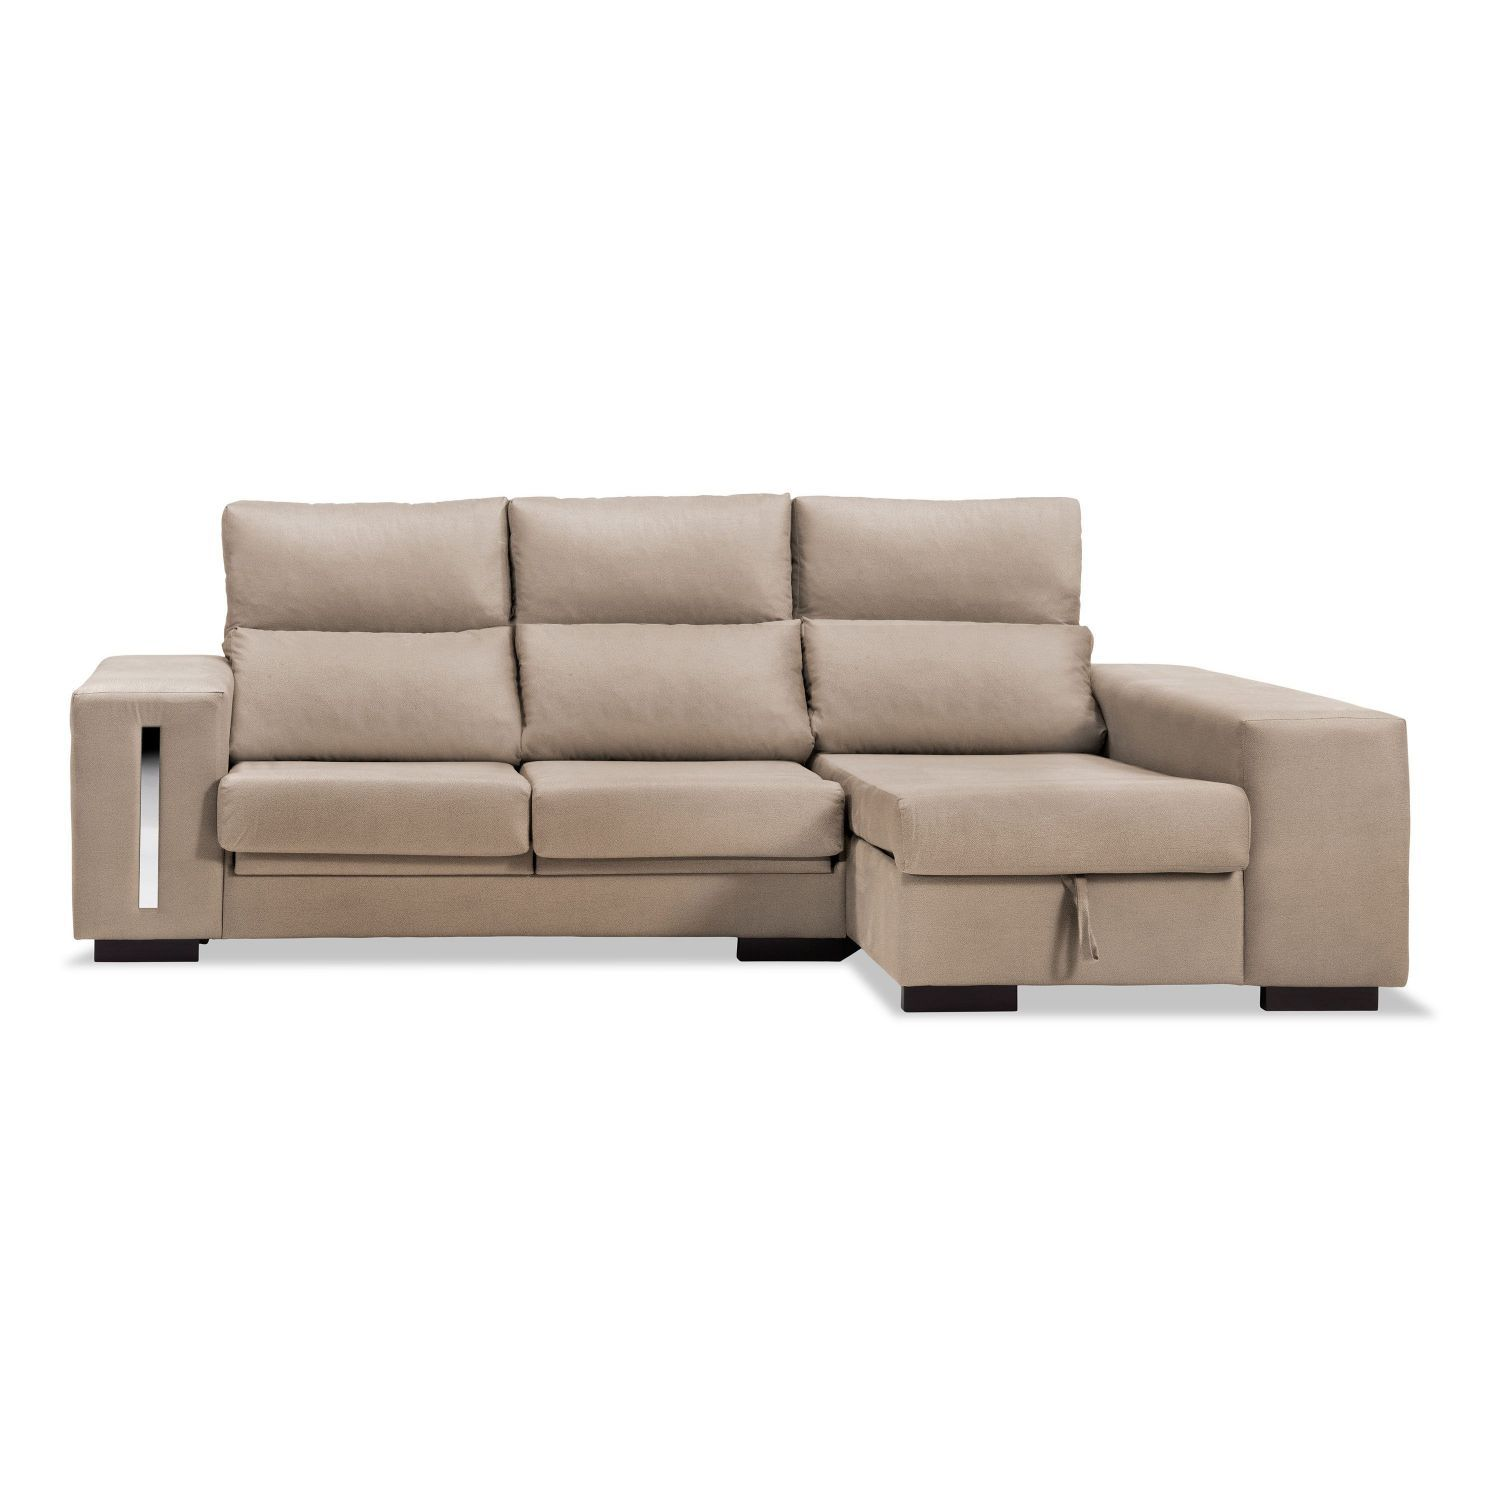 Sof chaise longue beige reclinable extensible con 2 for Sofa 2 plazas extensible